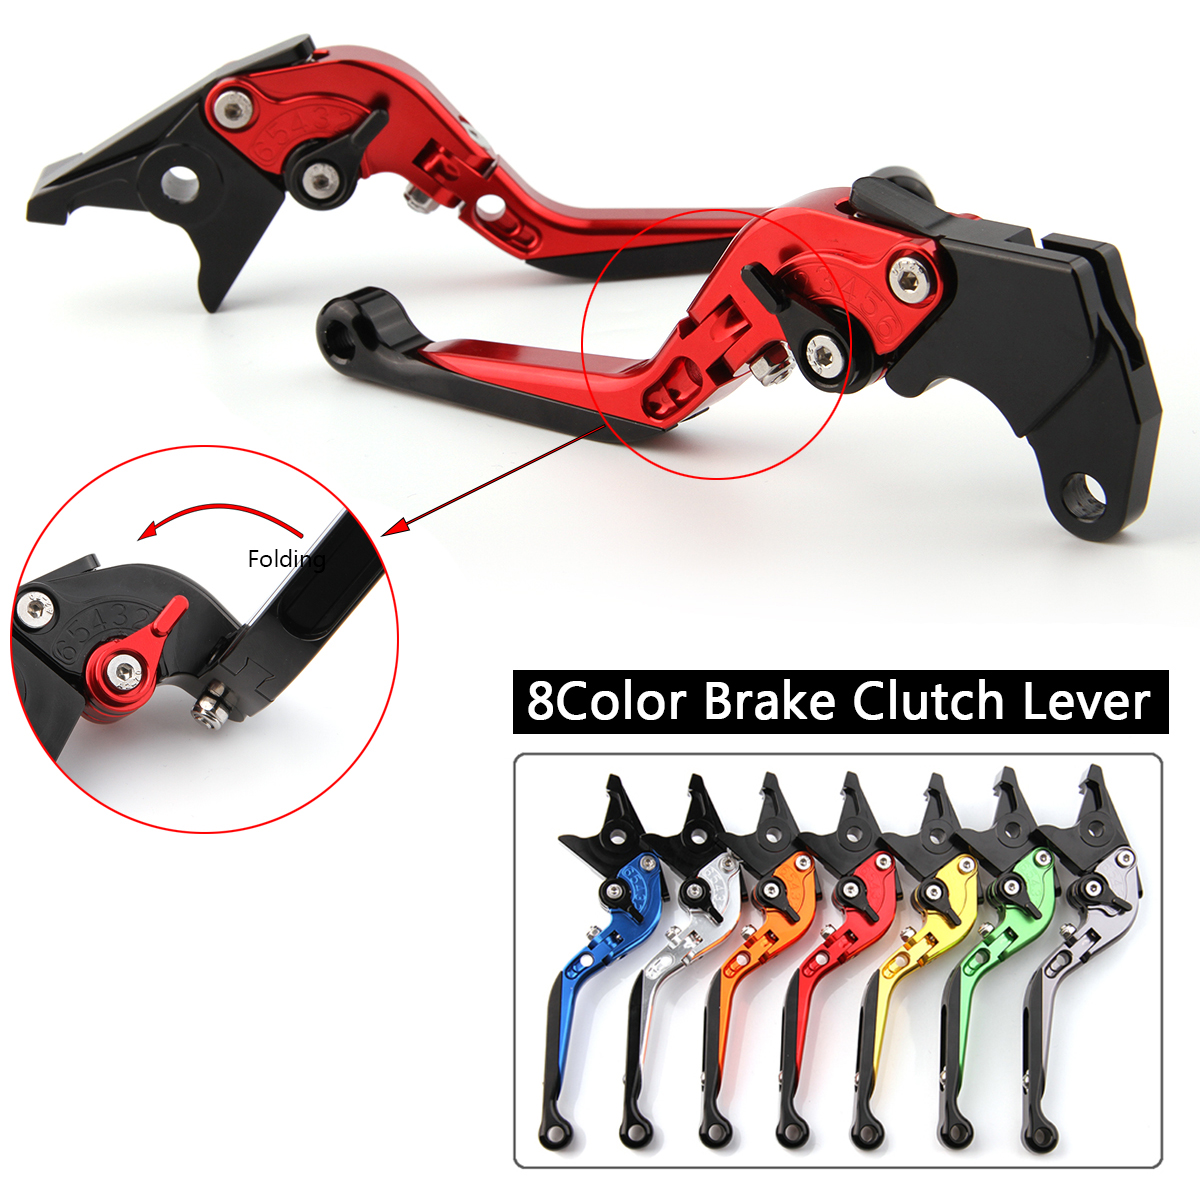 CNC Levers for Honda VFR800 CBR1100XX BLACKBIRD ST1300 ST1300A Motorcycle Adjustable Folding Extendable Brake Clutch Levers in Levers Ropes Cables from Automobiles Motorcycles